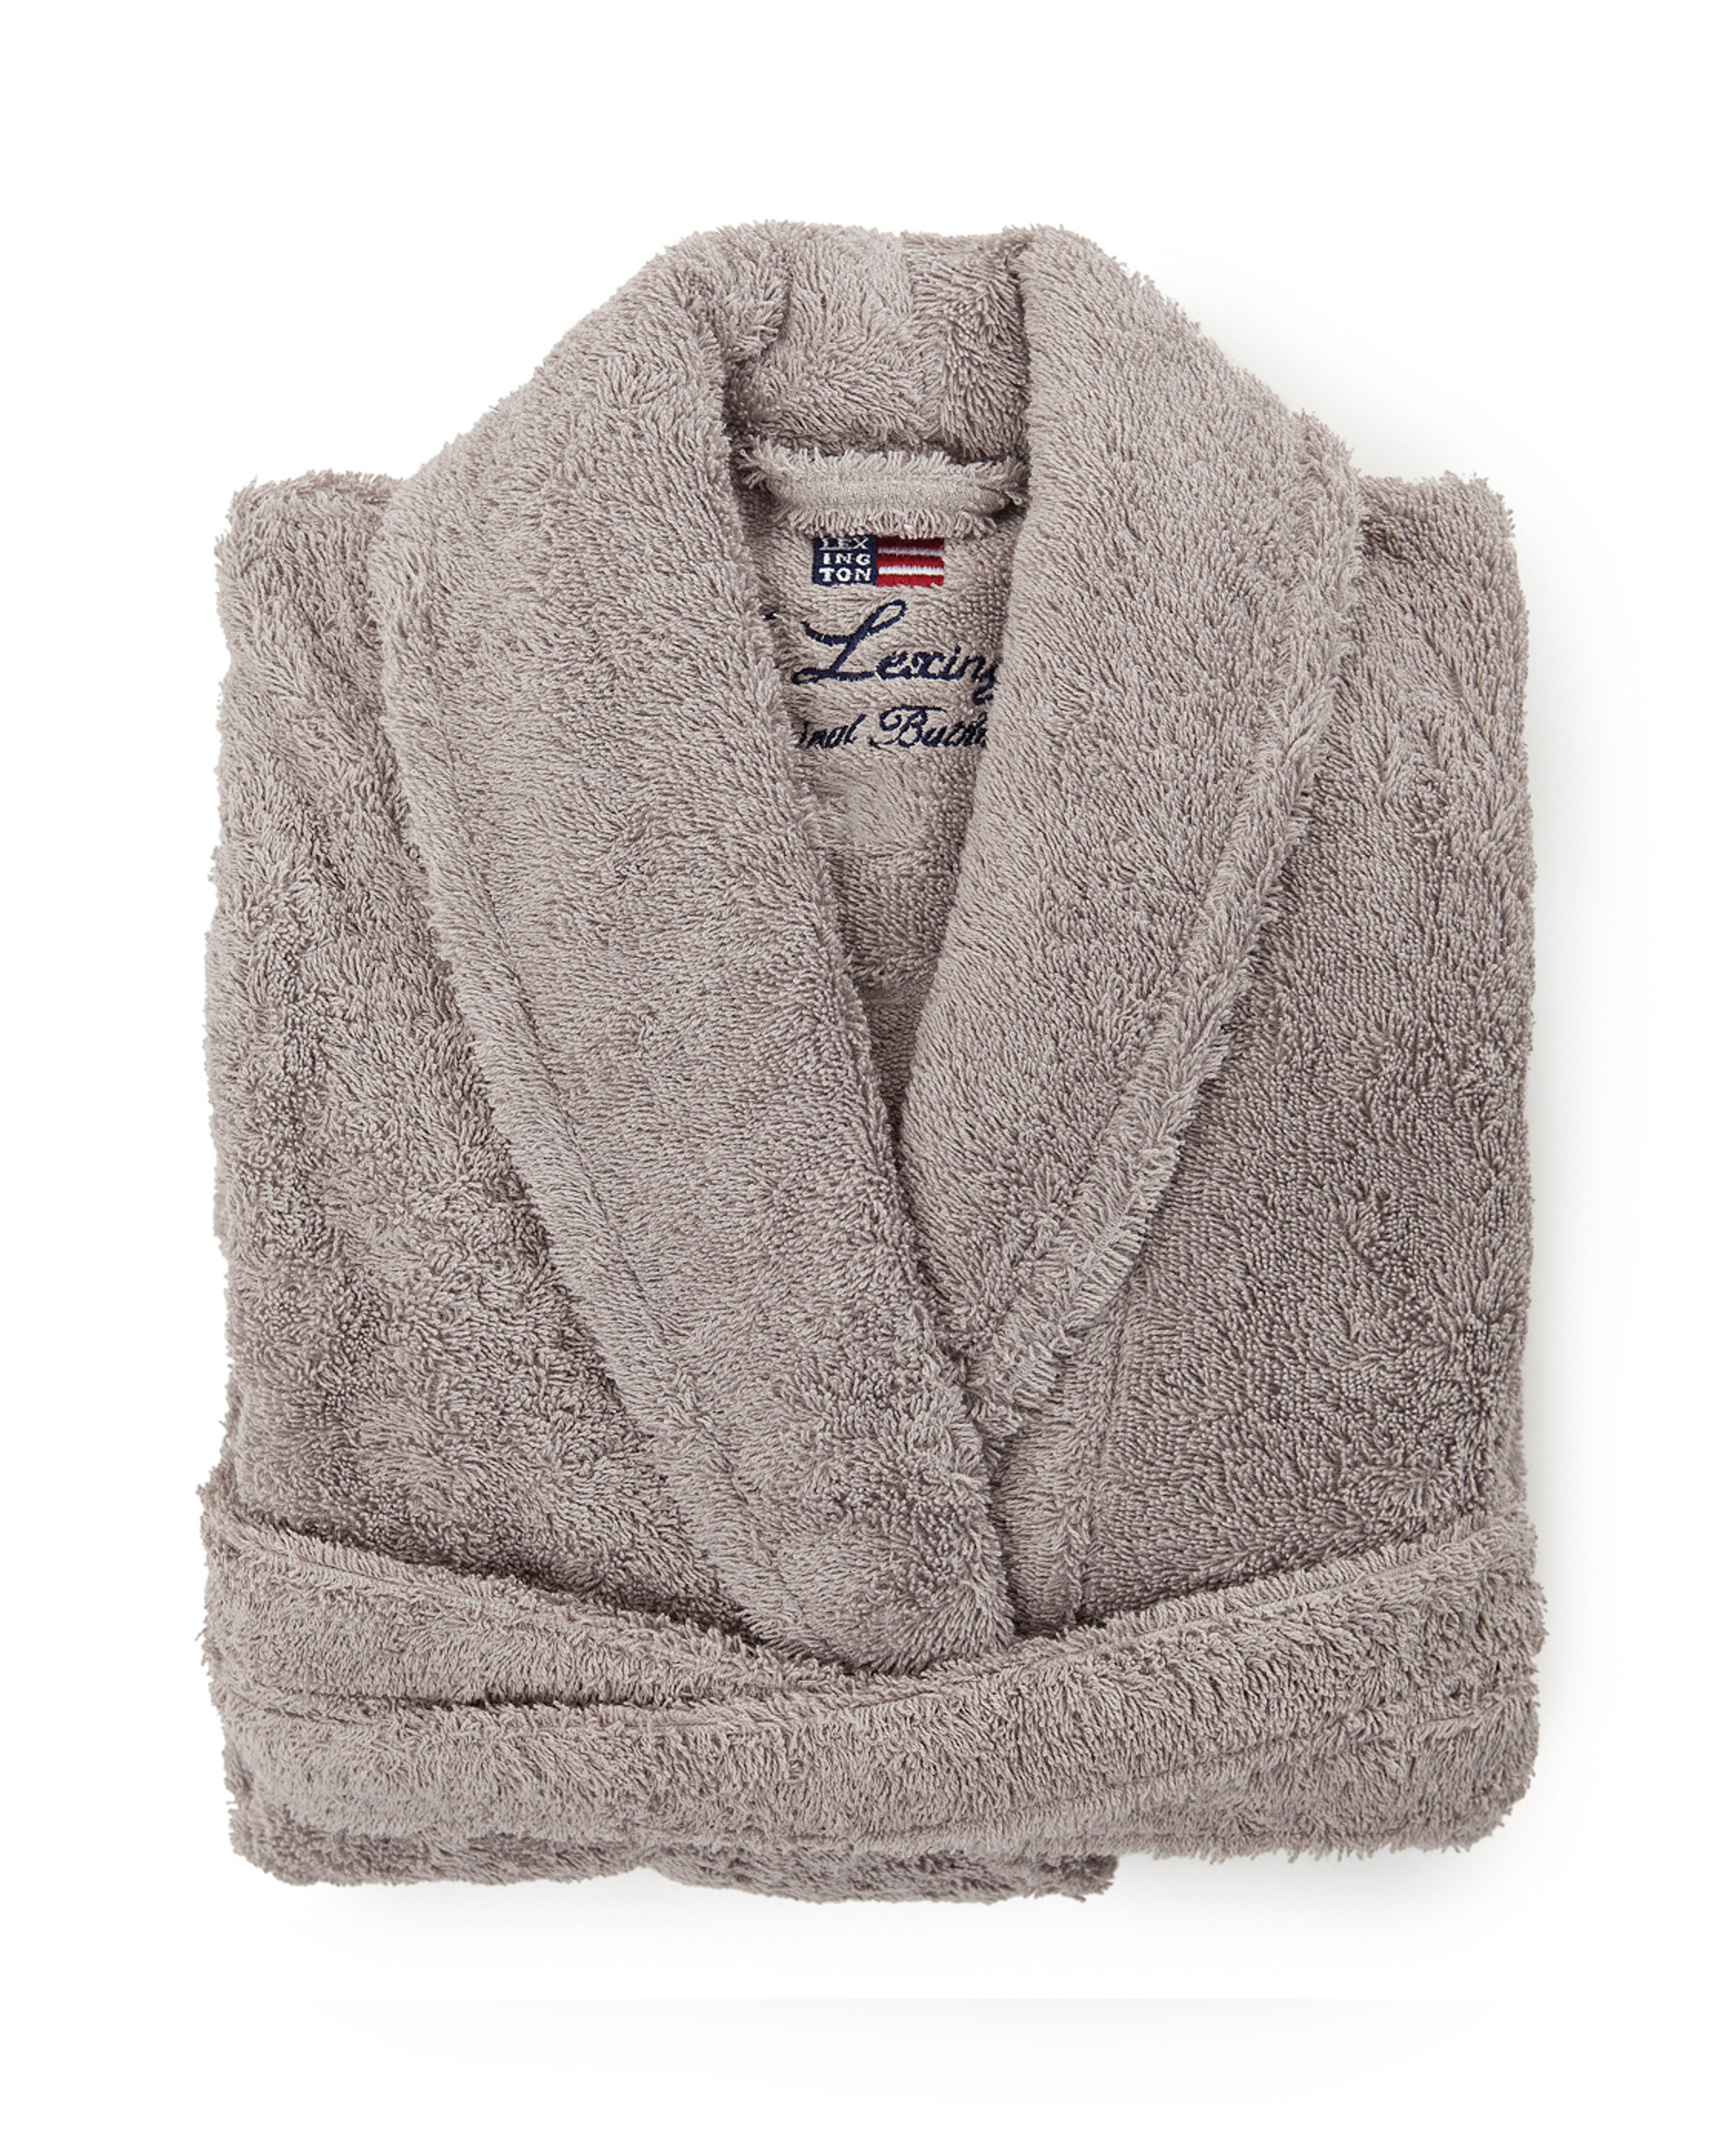 Original Bathrobe, Gray